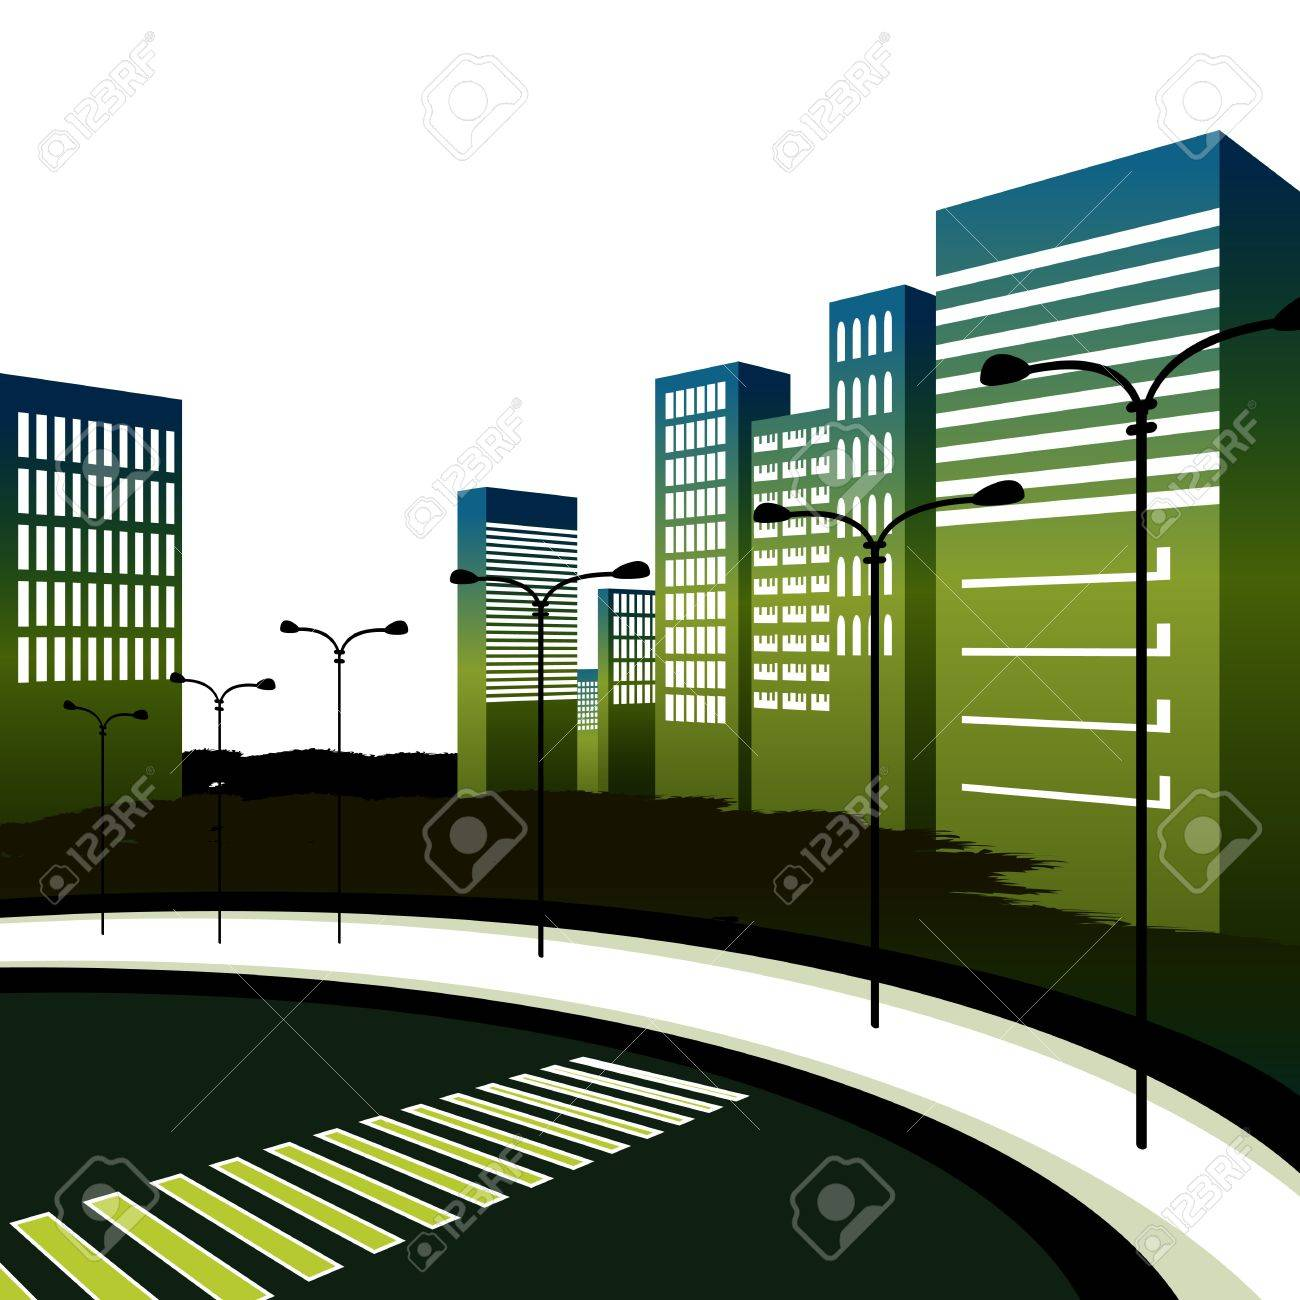 An image of a crosswalk in a large downtown city. Stock Vector - 11386804